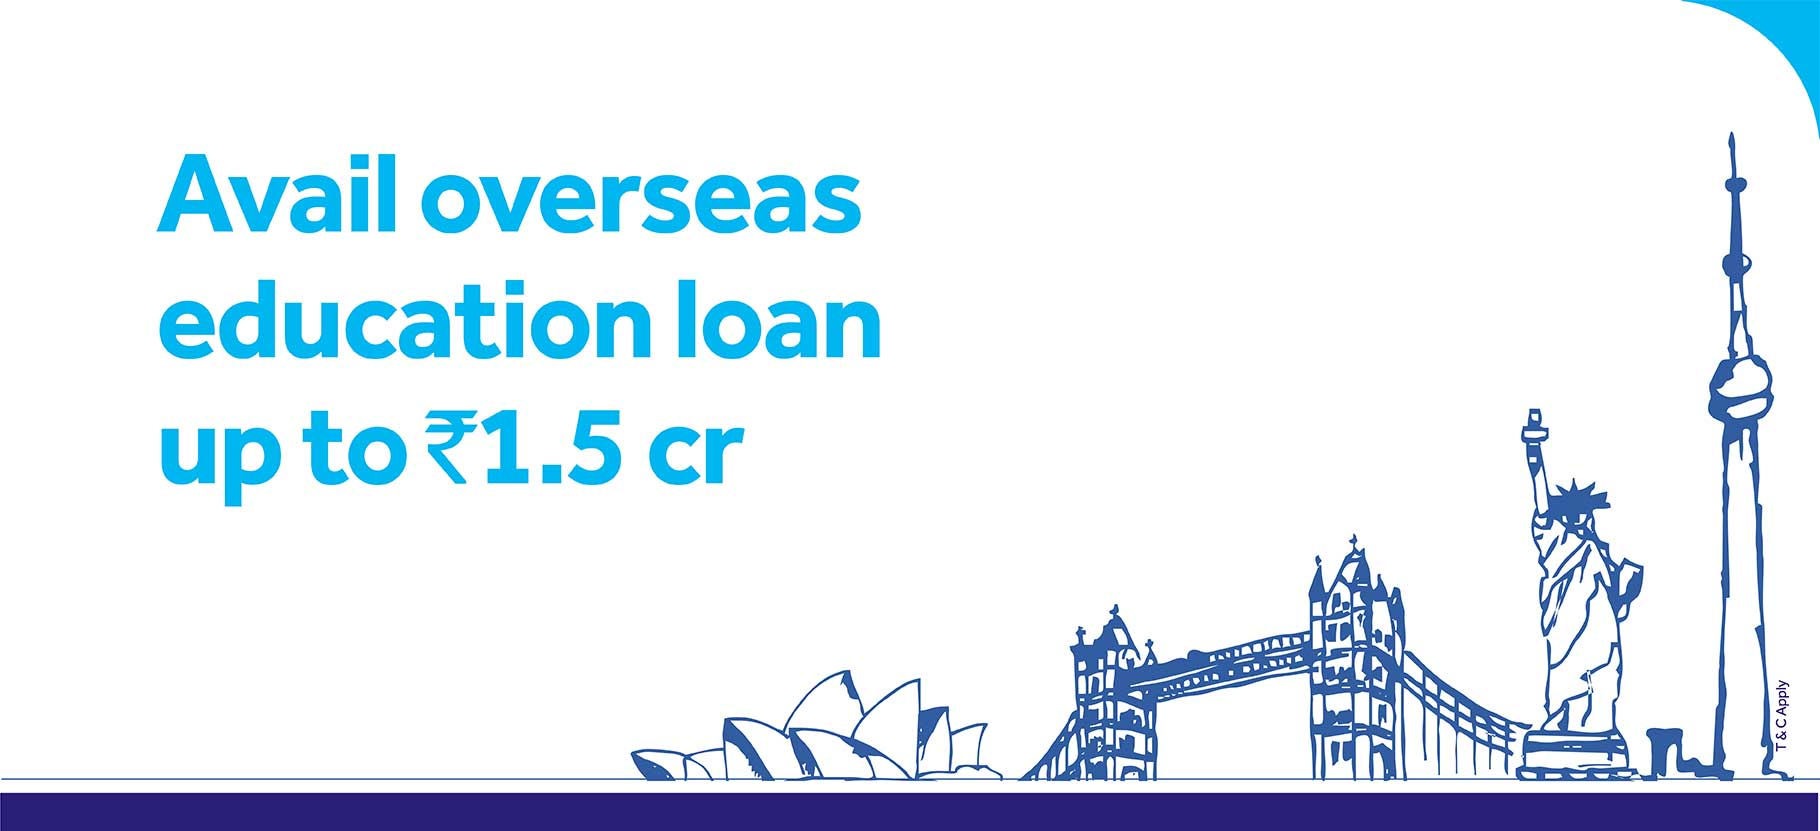 Avail overseas education loan up to rs1.5cr